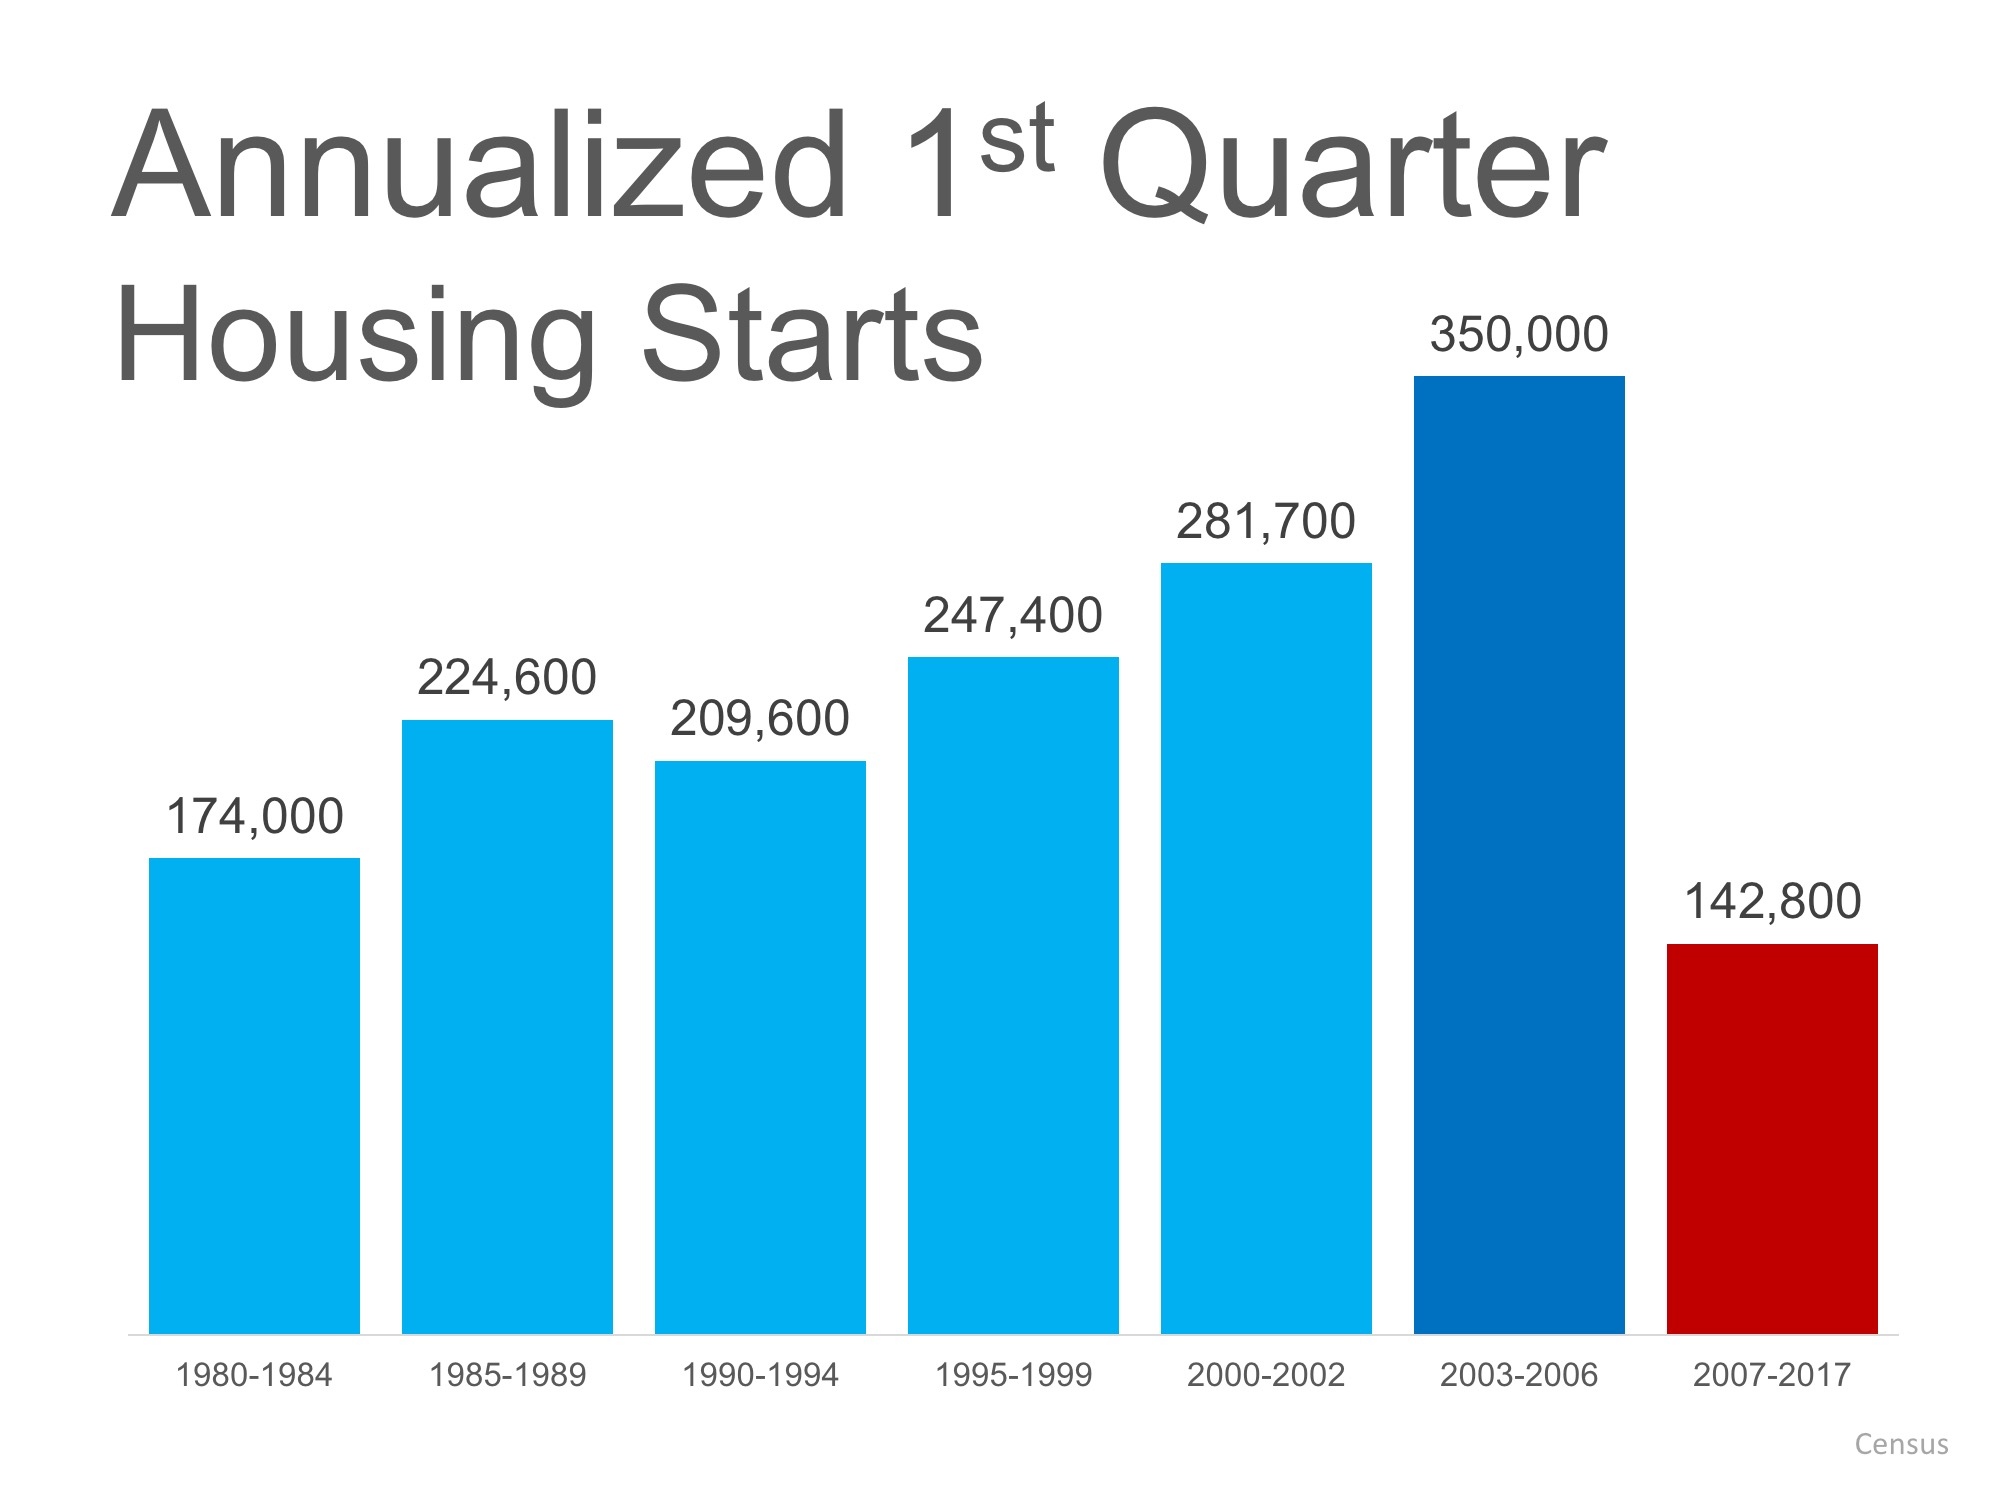 Housing starts 1st quarter